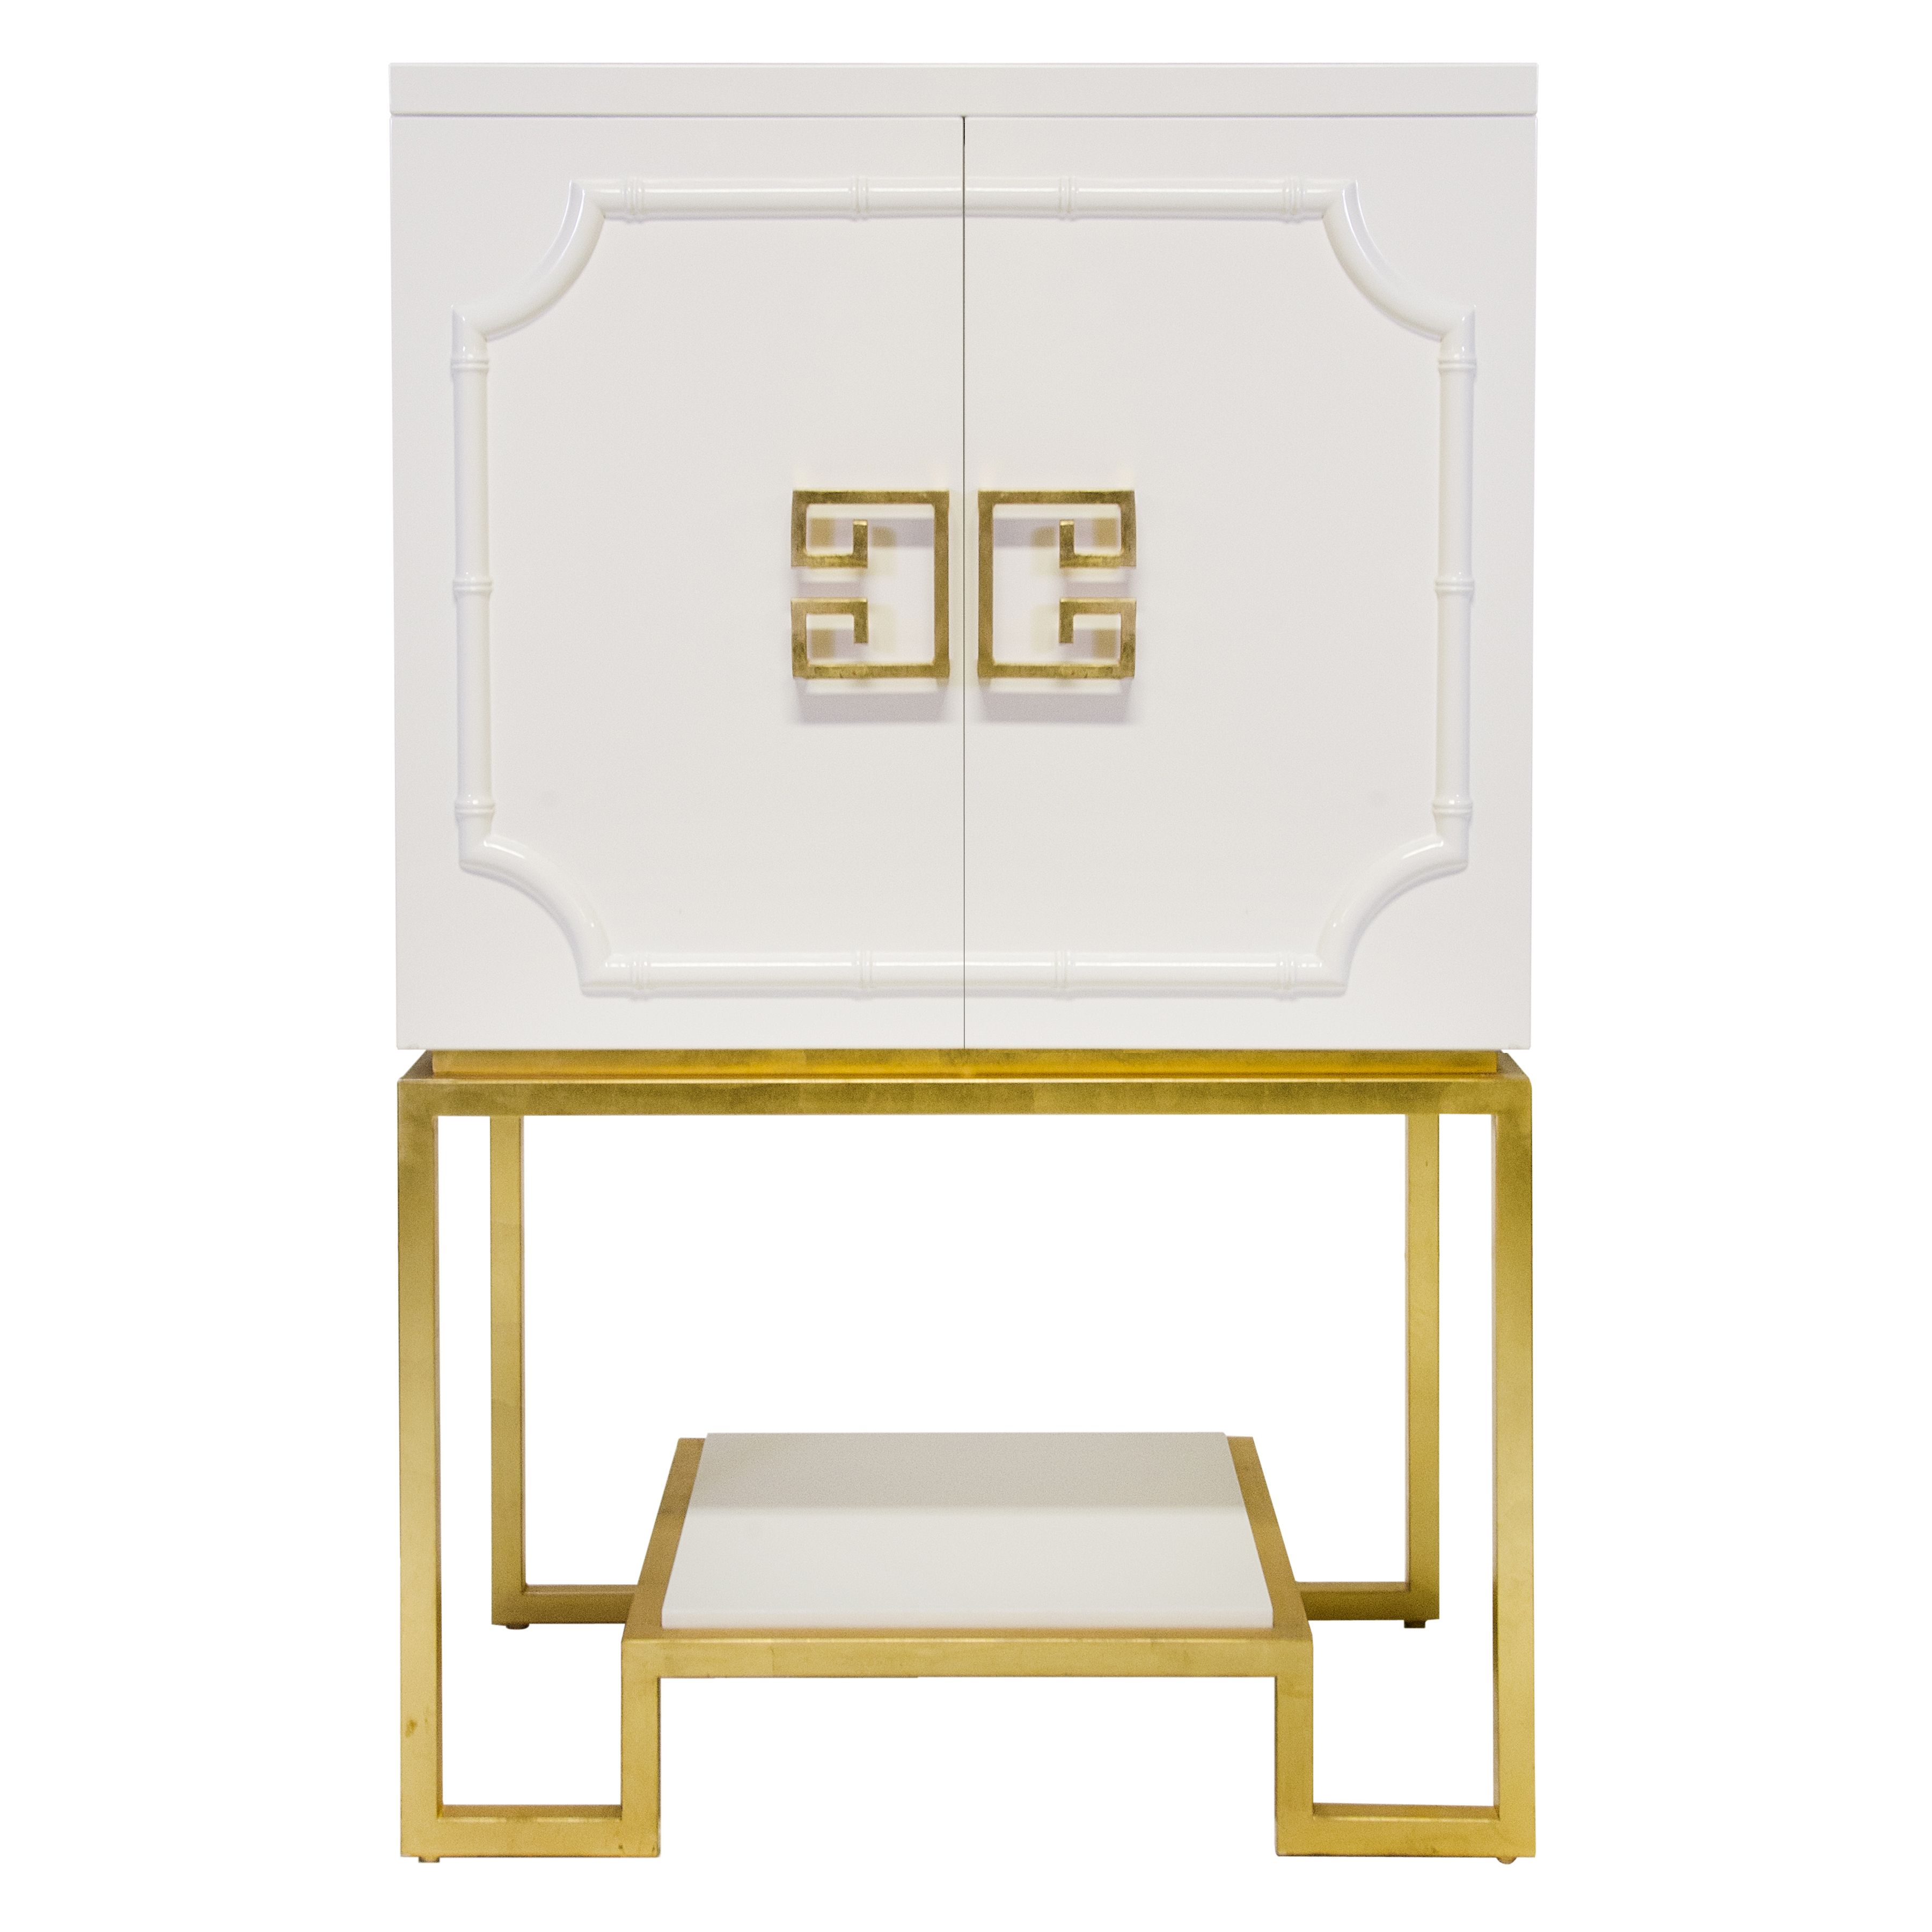 Exceptionnel Worlds Away U2013 Anna WH (white) U2013 White Lacquered Bar Cabinet With Gold  Leafed Base And White Lacquer Shelf. The Interior Is Two Sided And Has  Adjustable ...